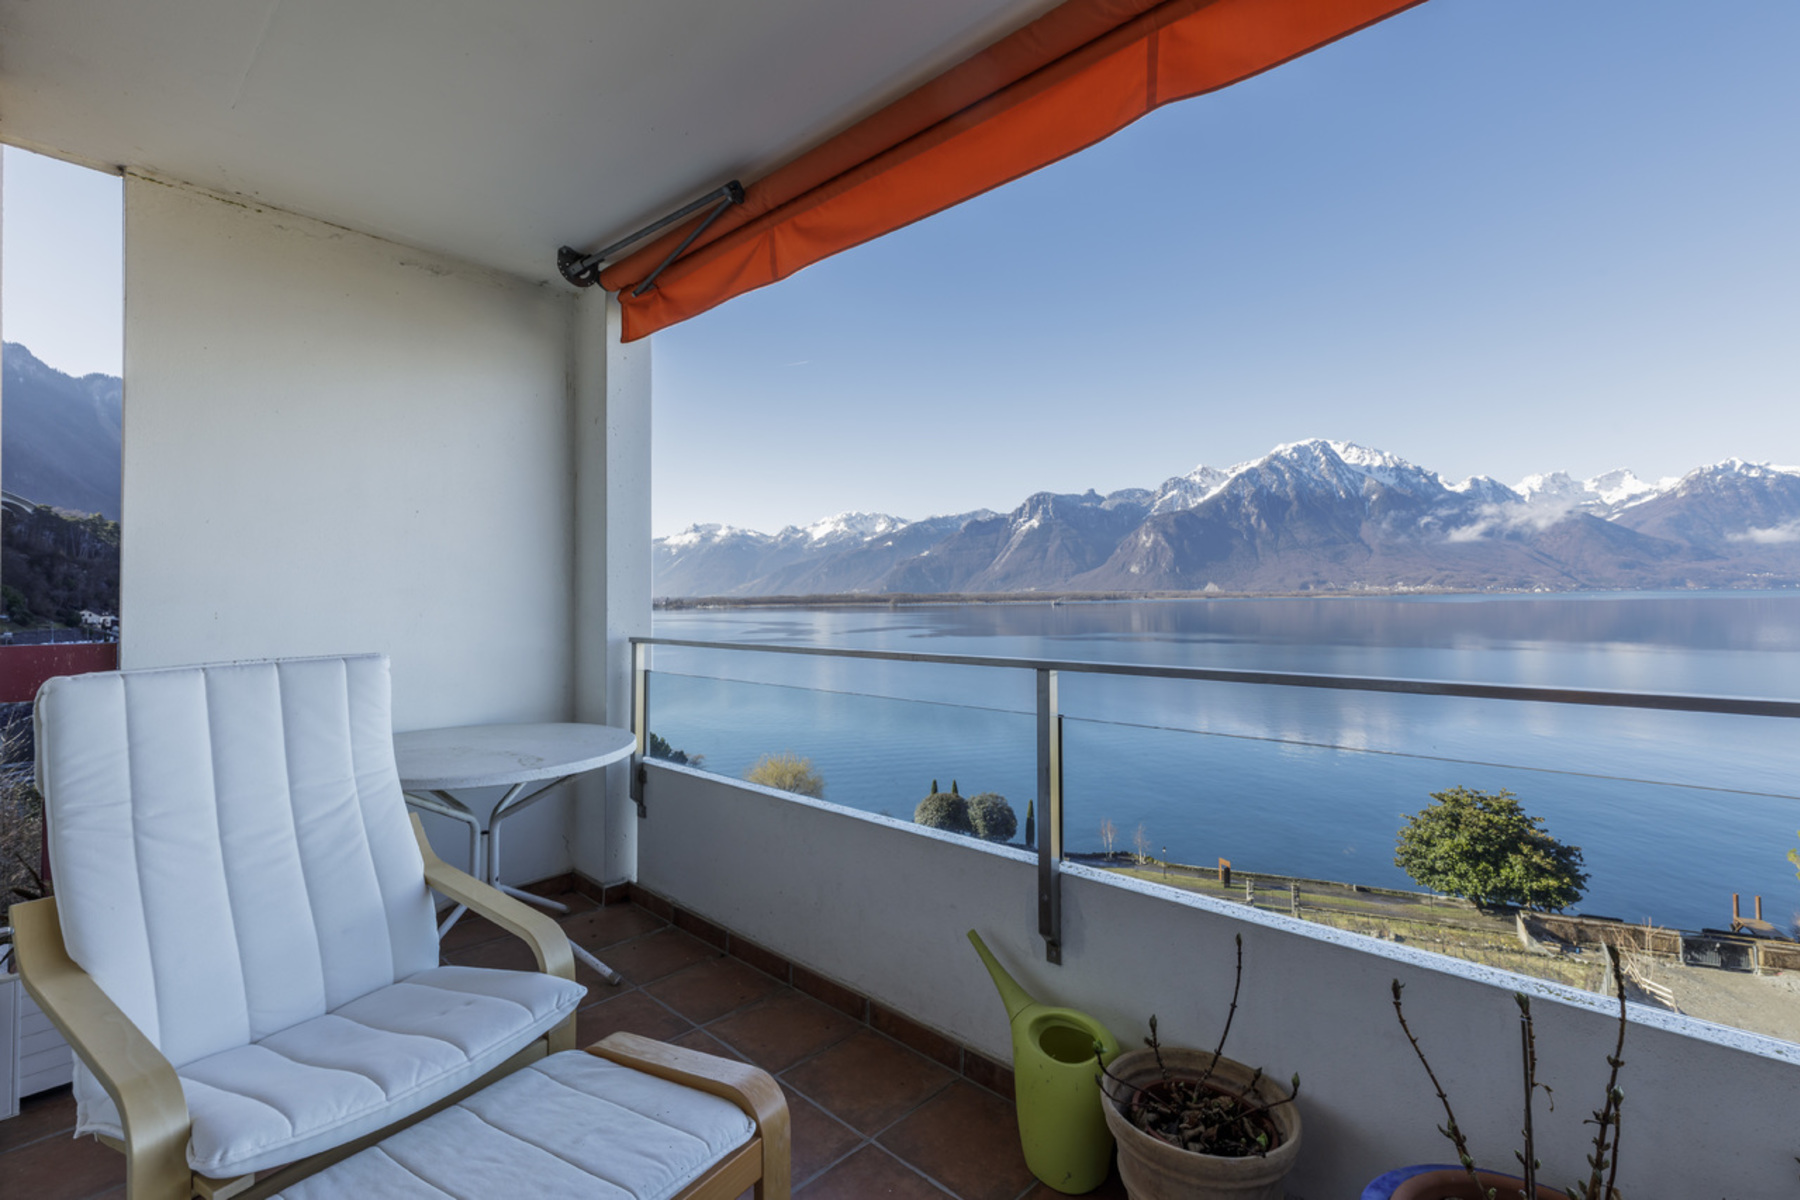 Condominiums 为 销售 在 Spacious apartment with panoramic views over the lake Veytaux Other Vaud, 沃州 1820 瑞士